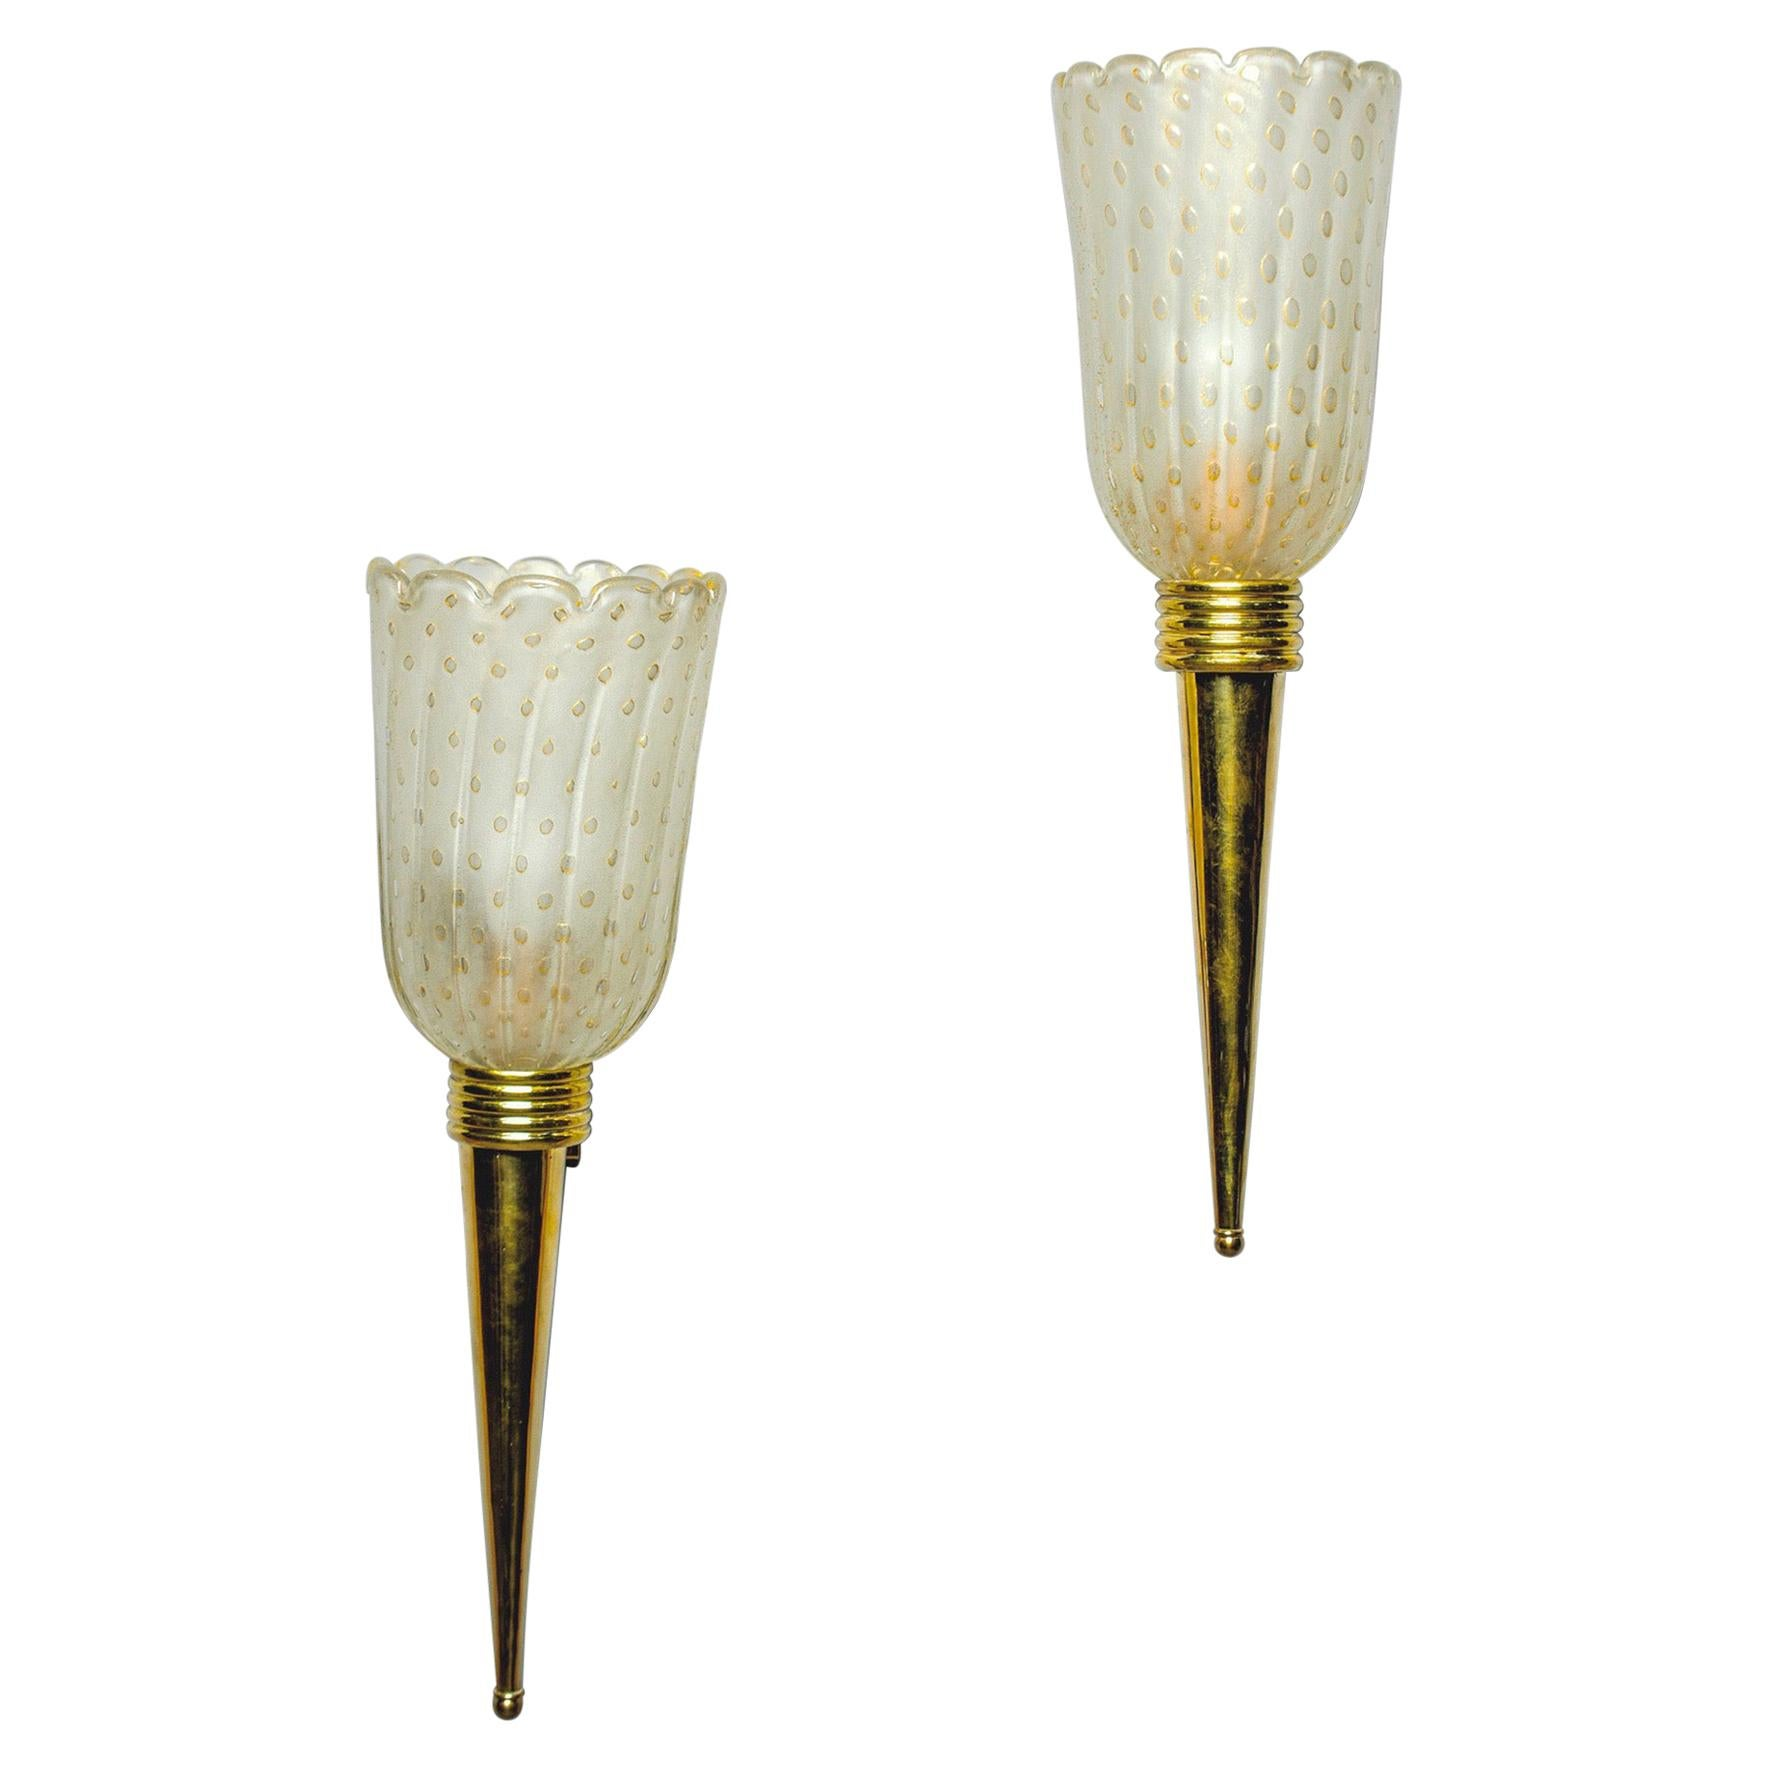 Pair of Torchiere Style Sconces with Murano Glass and Brass Fittings